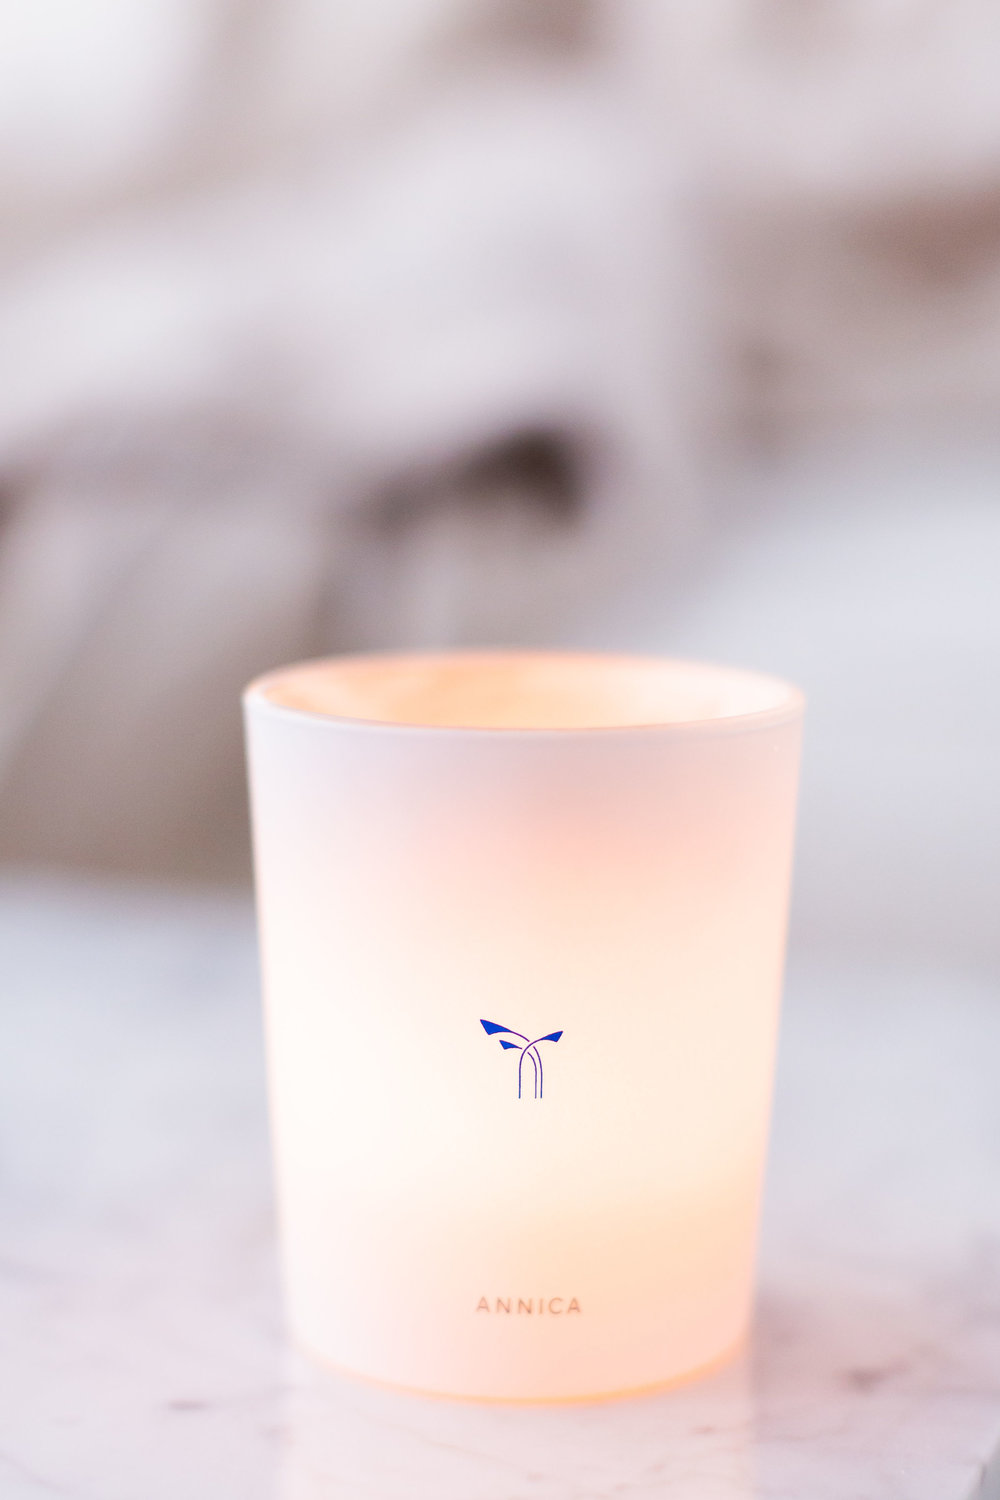 The best non-toxic night time routine for restful sleep and beautiful skin, clean beauty, facial care, self-care, tips, favorite non-toxic beauty products, non-toxic household products, healthy skin, healthy life, annica candle, phlur, responsibly sourced & cruelty-free fragrances & candles. Scents that feel as great as they smell.